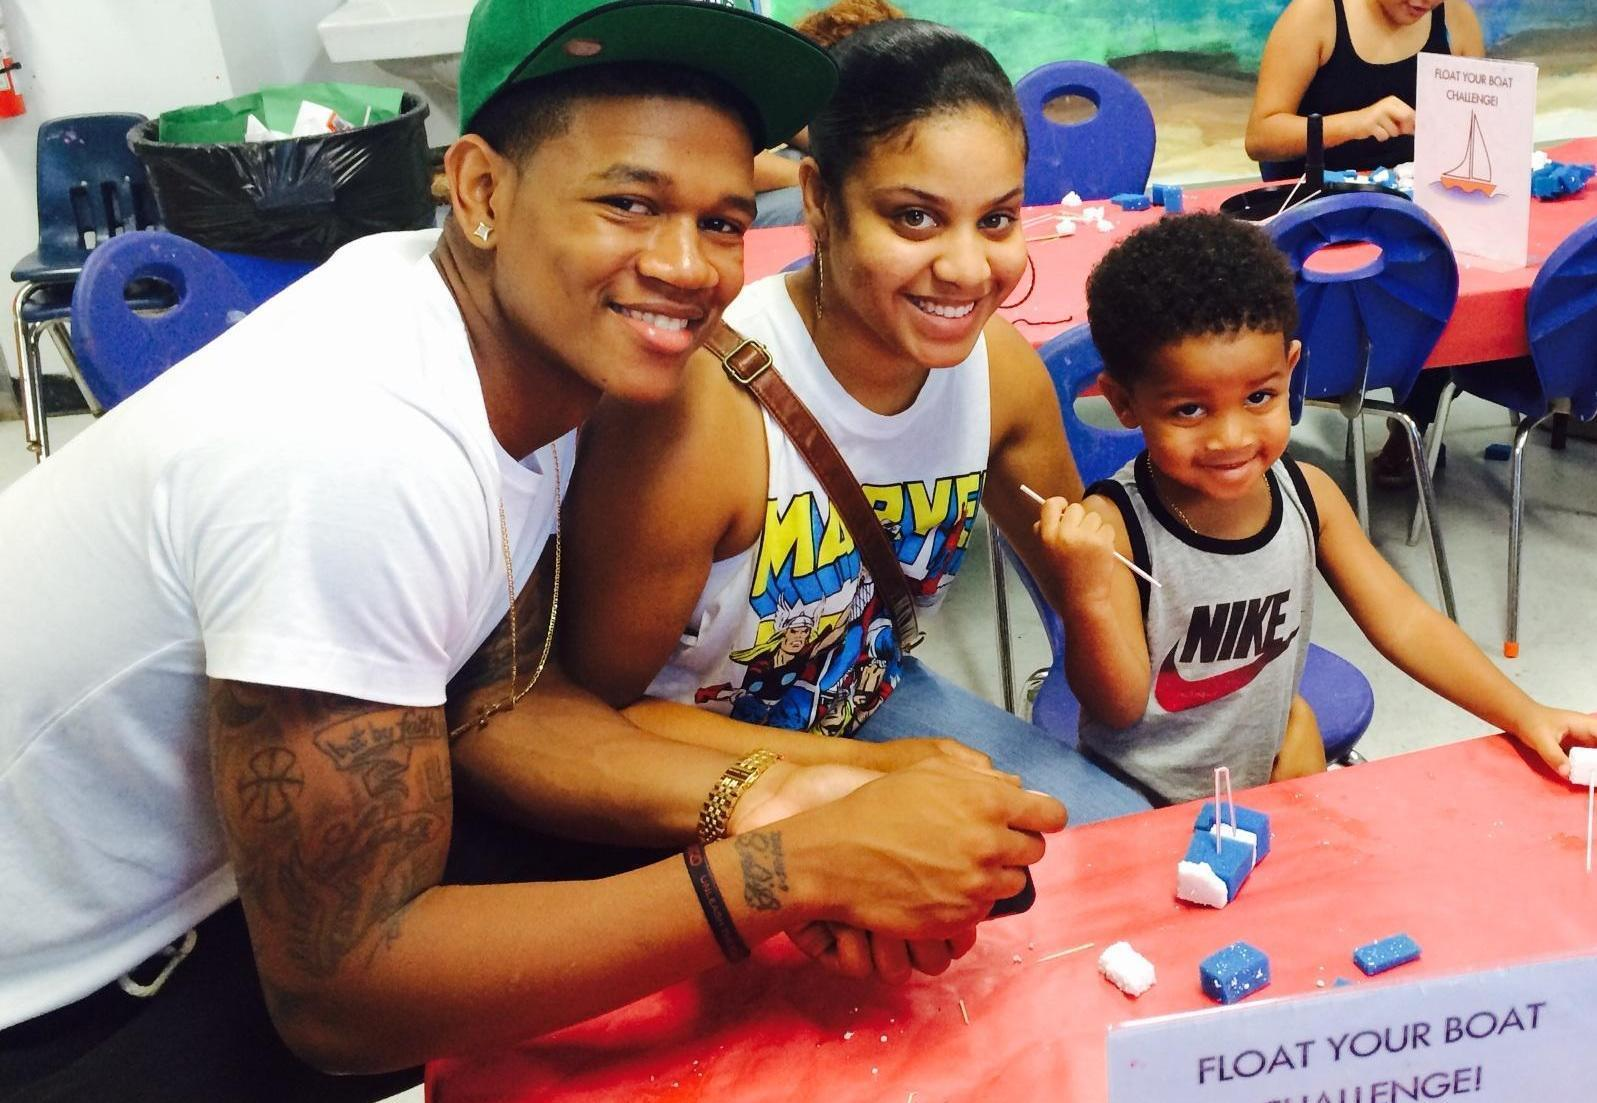 Miami's Rion Brown, pictured here with his girlfriend Christina Troche and son Rion Brown Jr., is hoping he'll get the call Thursday night during the NBA Draft. He says his son is his biggest motivation to keep chasing his basketball dream.